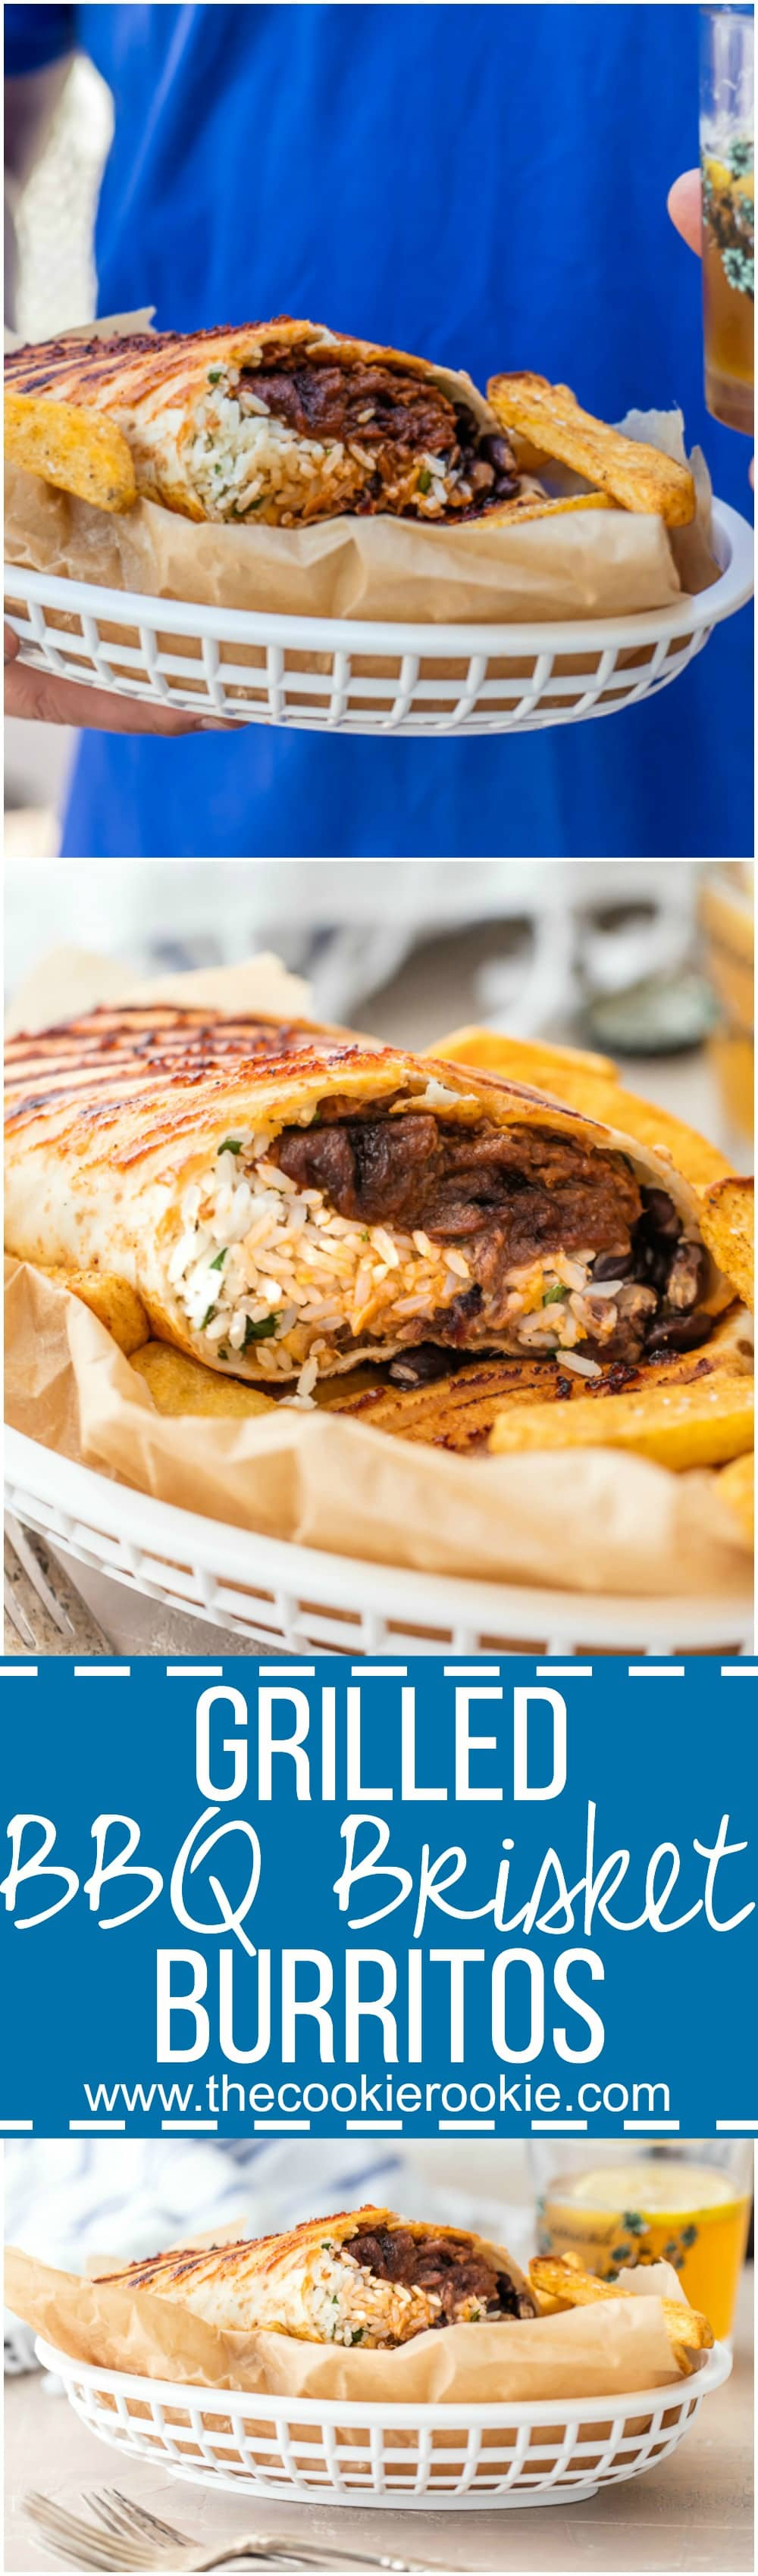 GRILLED BBQ BRISKET BURRITOS are the perfect way to enjoy Summer outside! BBQ has never been better than in a HUGE burrito! Stuffed with Cilantro Lime Rice, black beans, and tons of cheese. YUM!